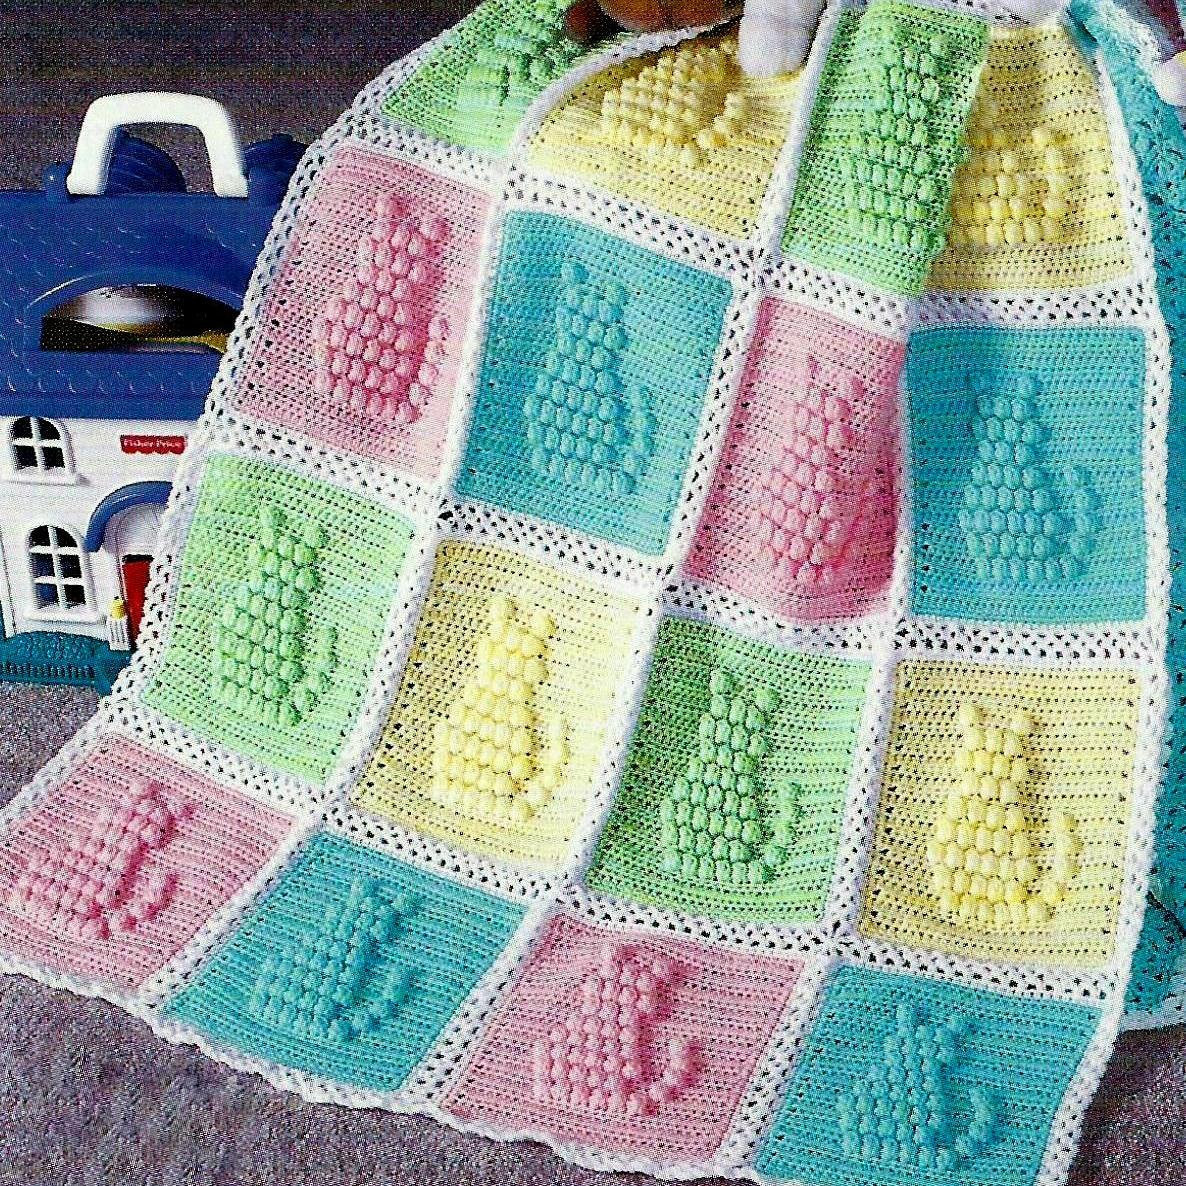 Vintage Crochet Pattern Kitty Cat Afghan from